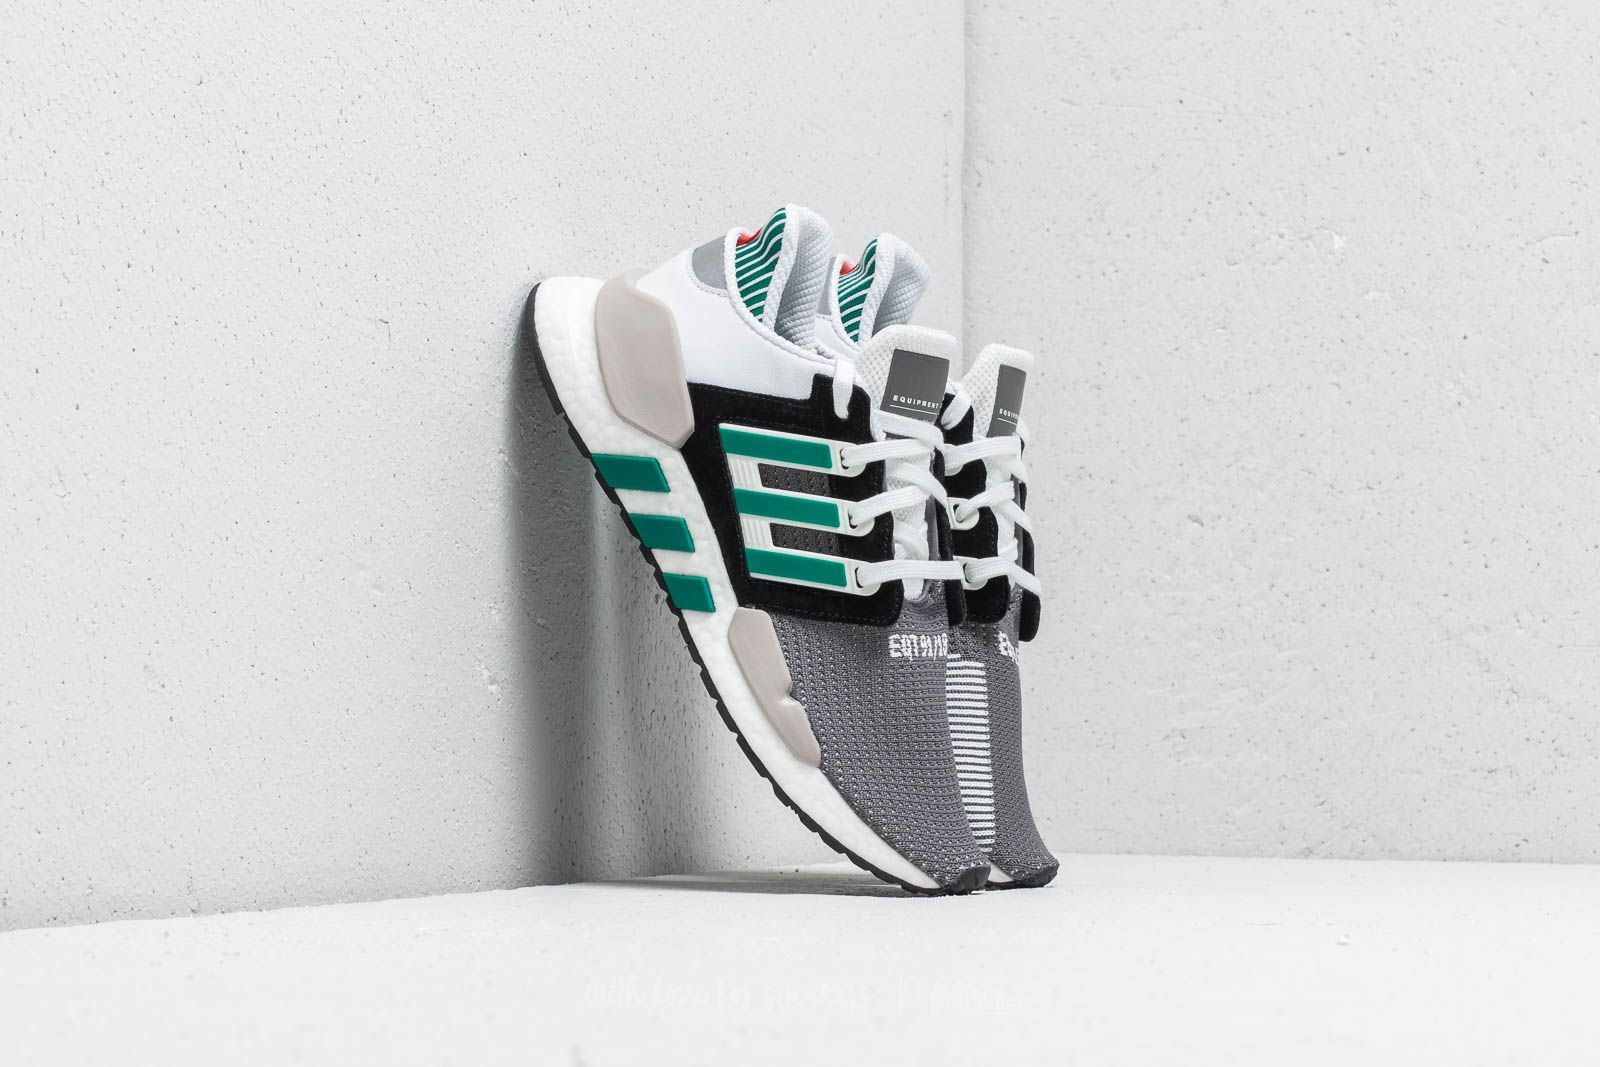 finest selection 7ff42 66fea adidas EQT Support 9118 Core Black Clear Granite Sub Green at a